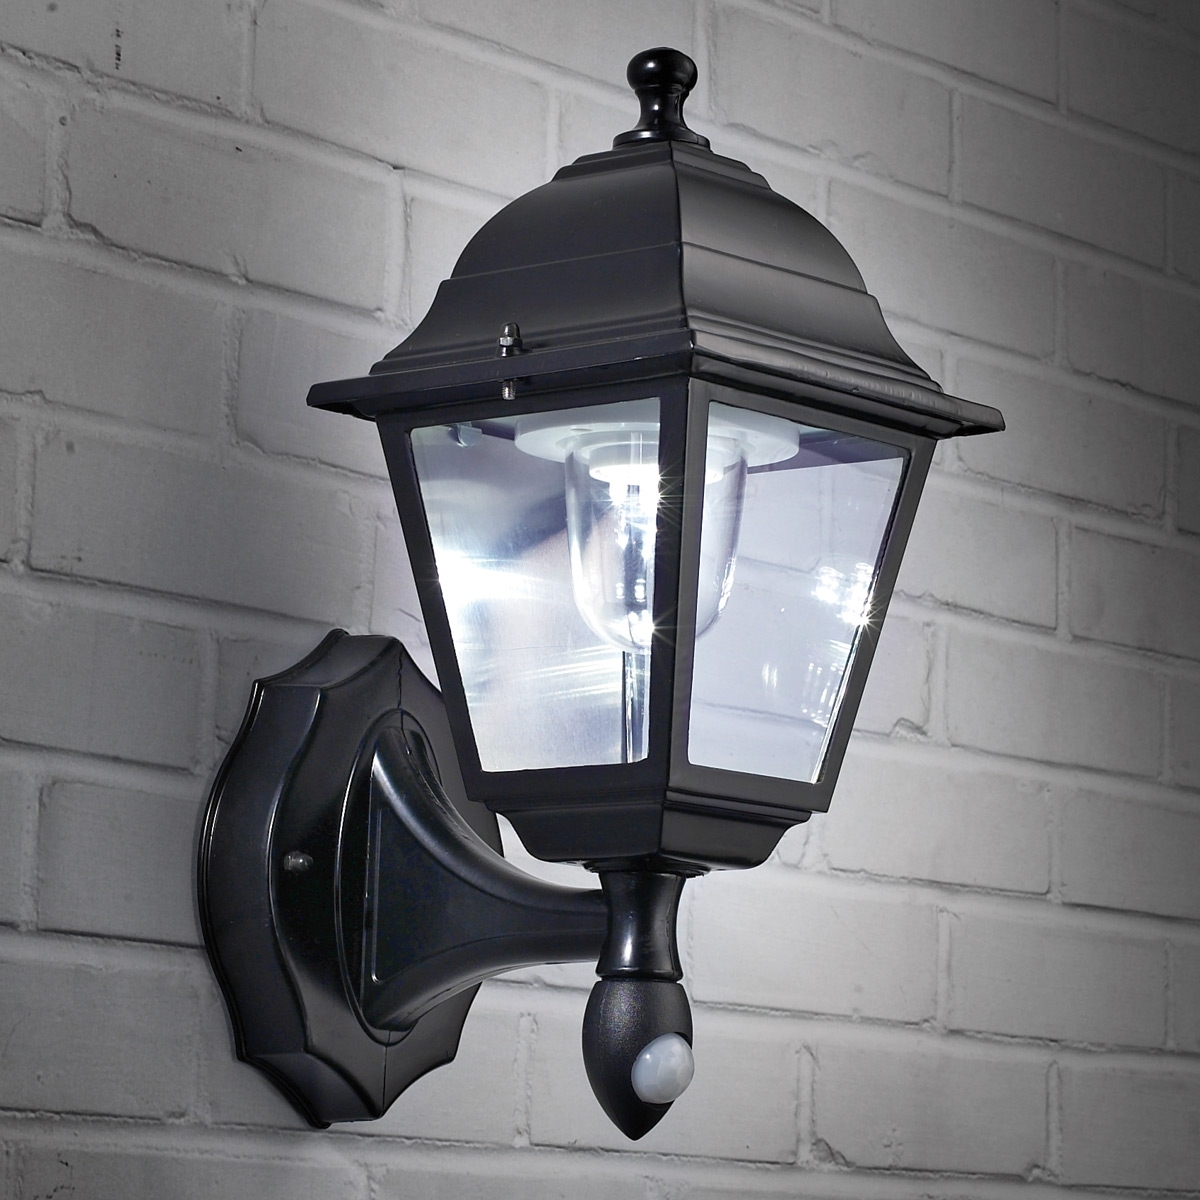 Outdoor Lanterns With Remote Control For Most Recently Released Indoor Light : Luxury Prime Indoor/outdoor Lighting Wireless Remote (View 12 of 20)